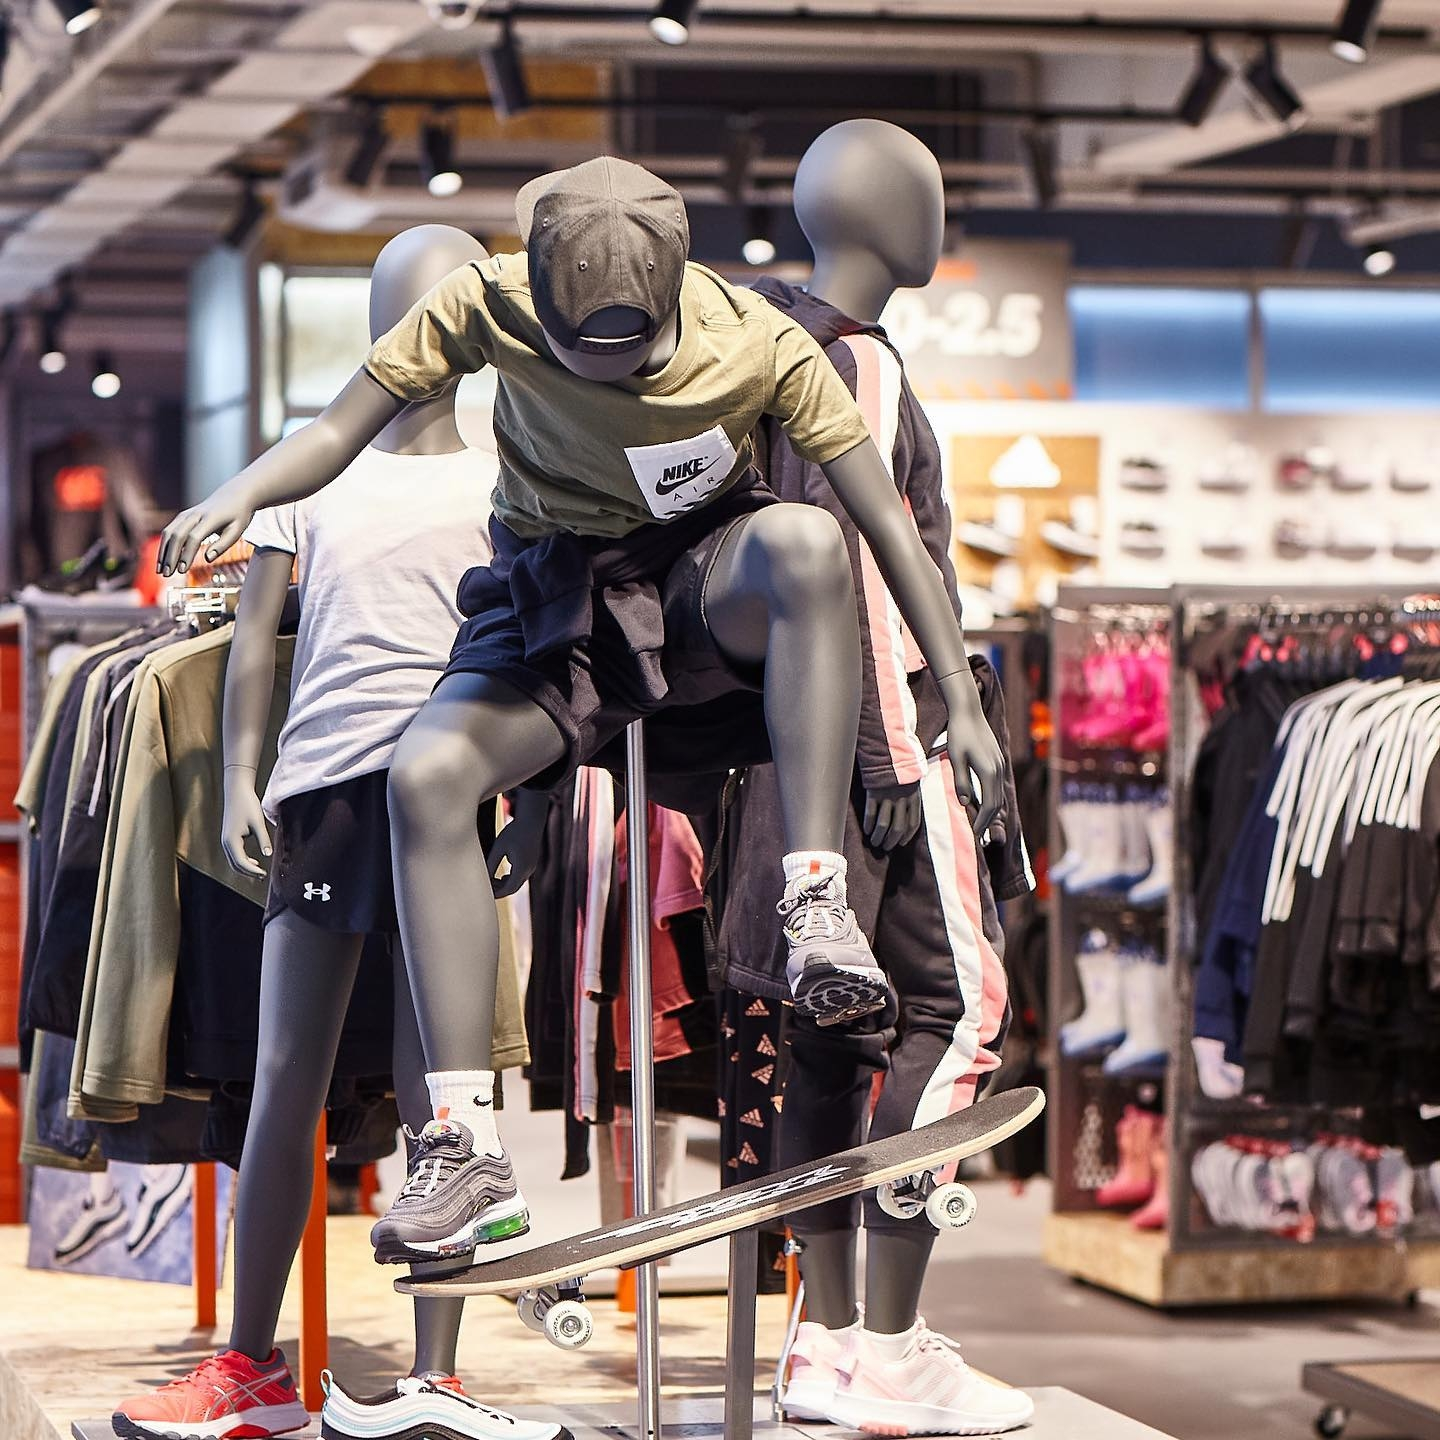 Sportsdirect flagship store on Oxford Street  London's by The One Off design team